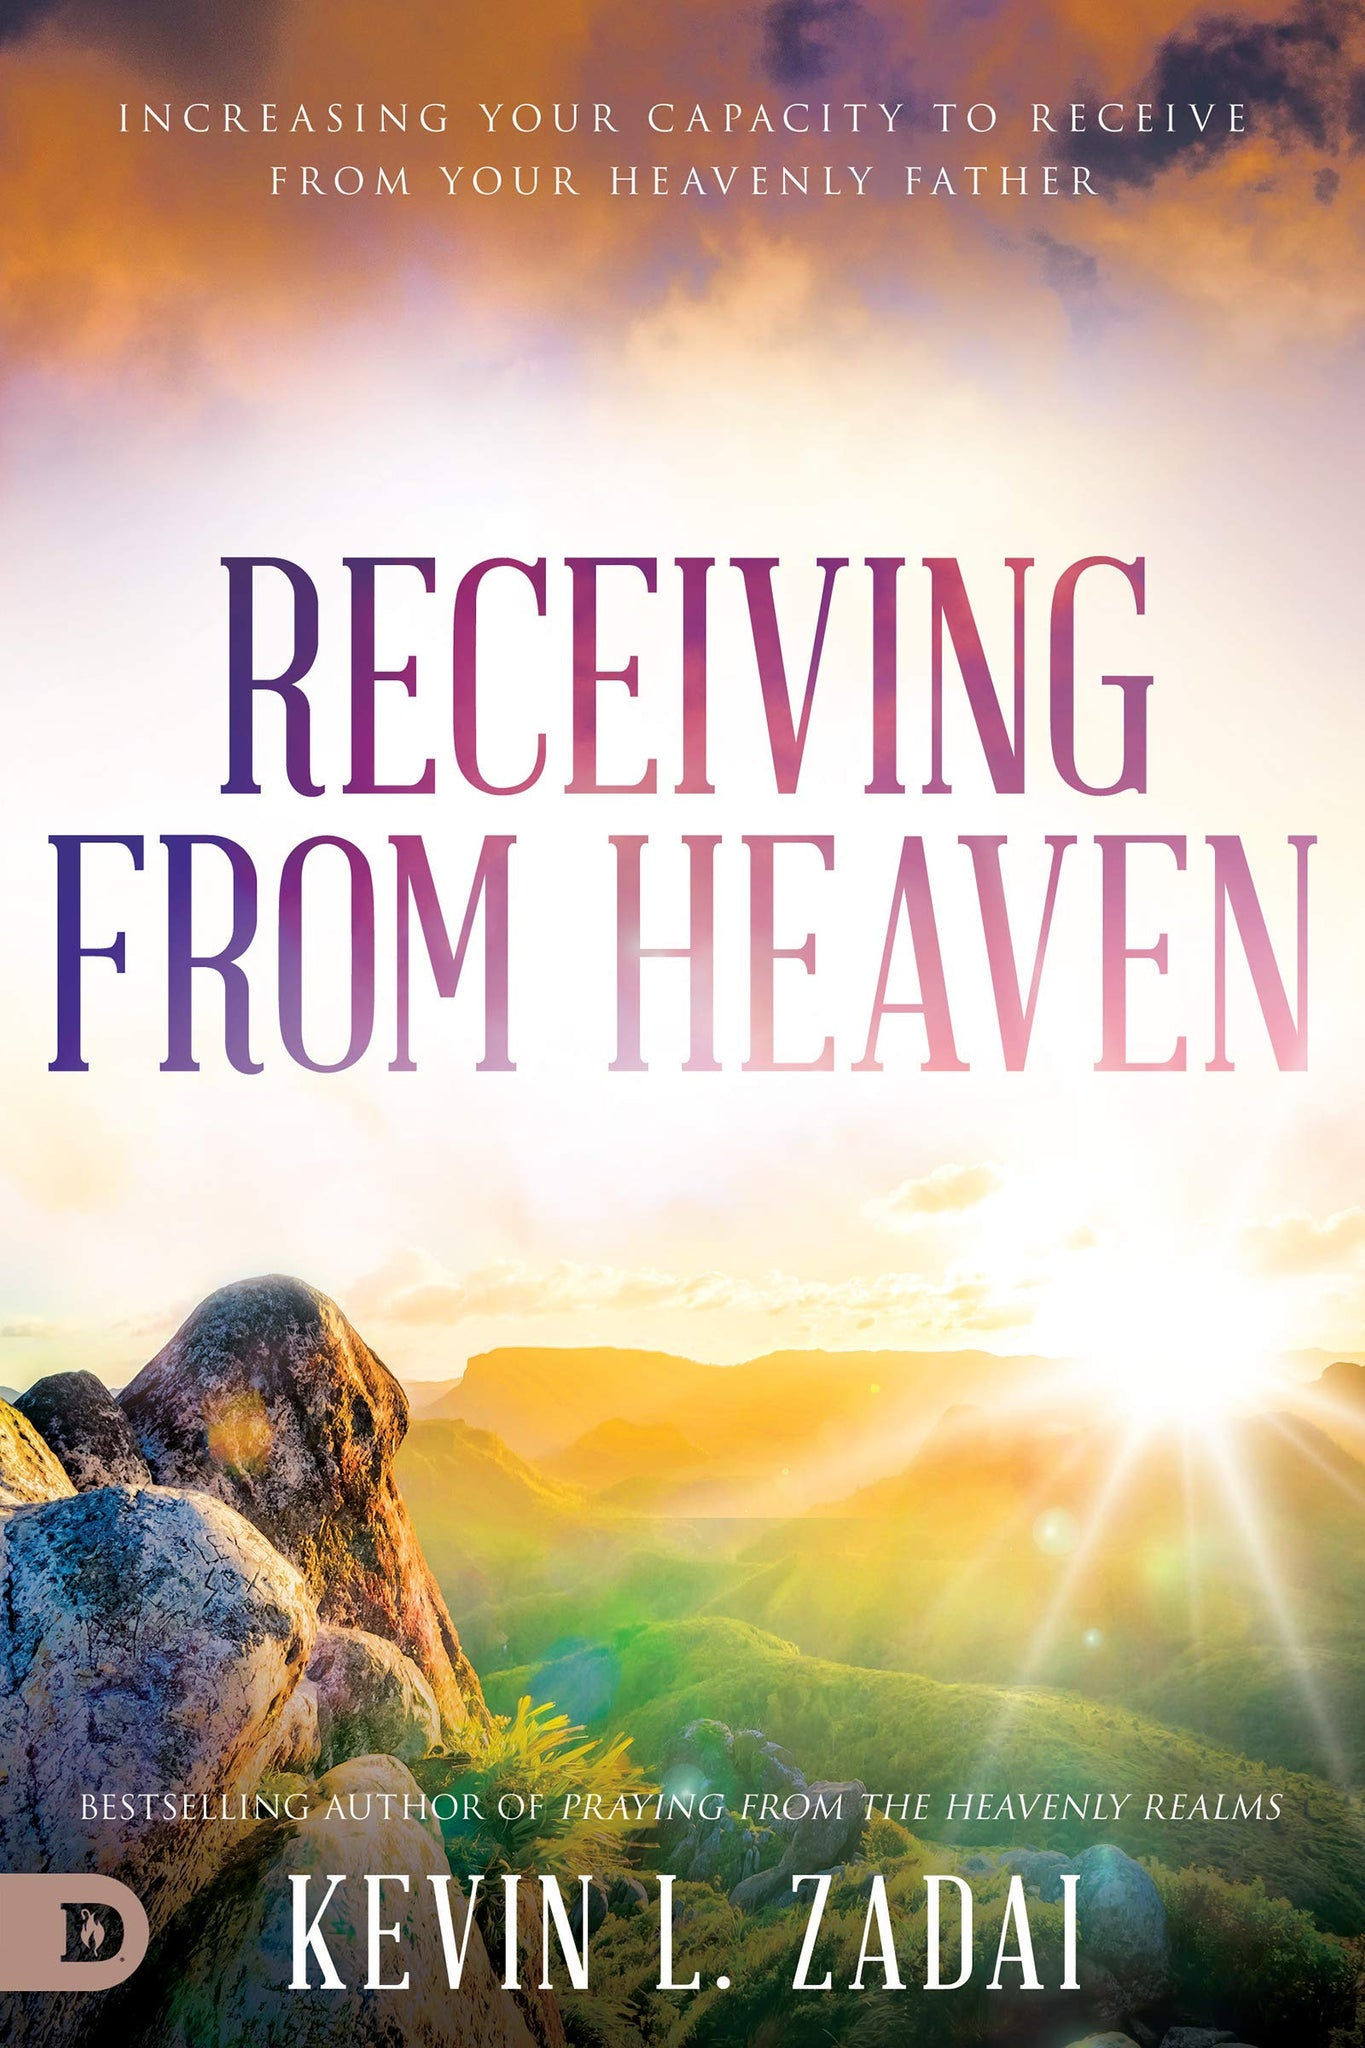 Receiving from Heaven: Increasing Your Capacity to Receive from Your Heavenly Father